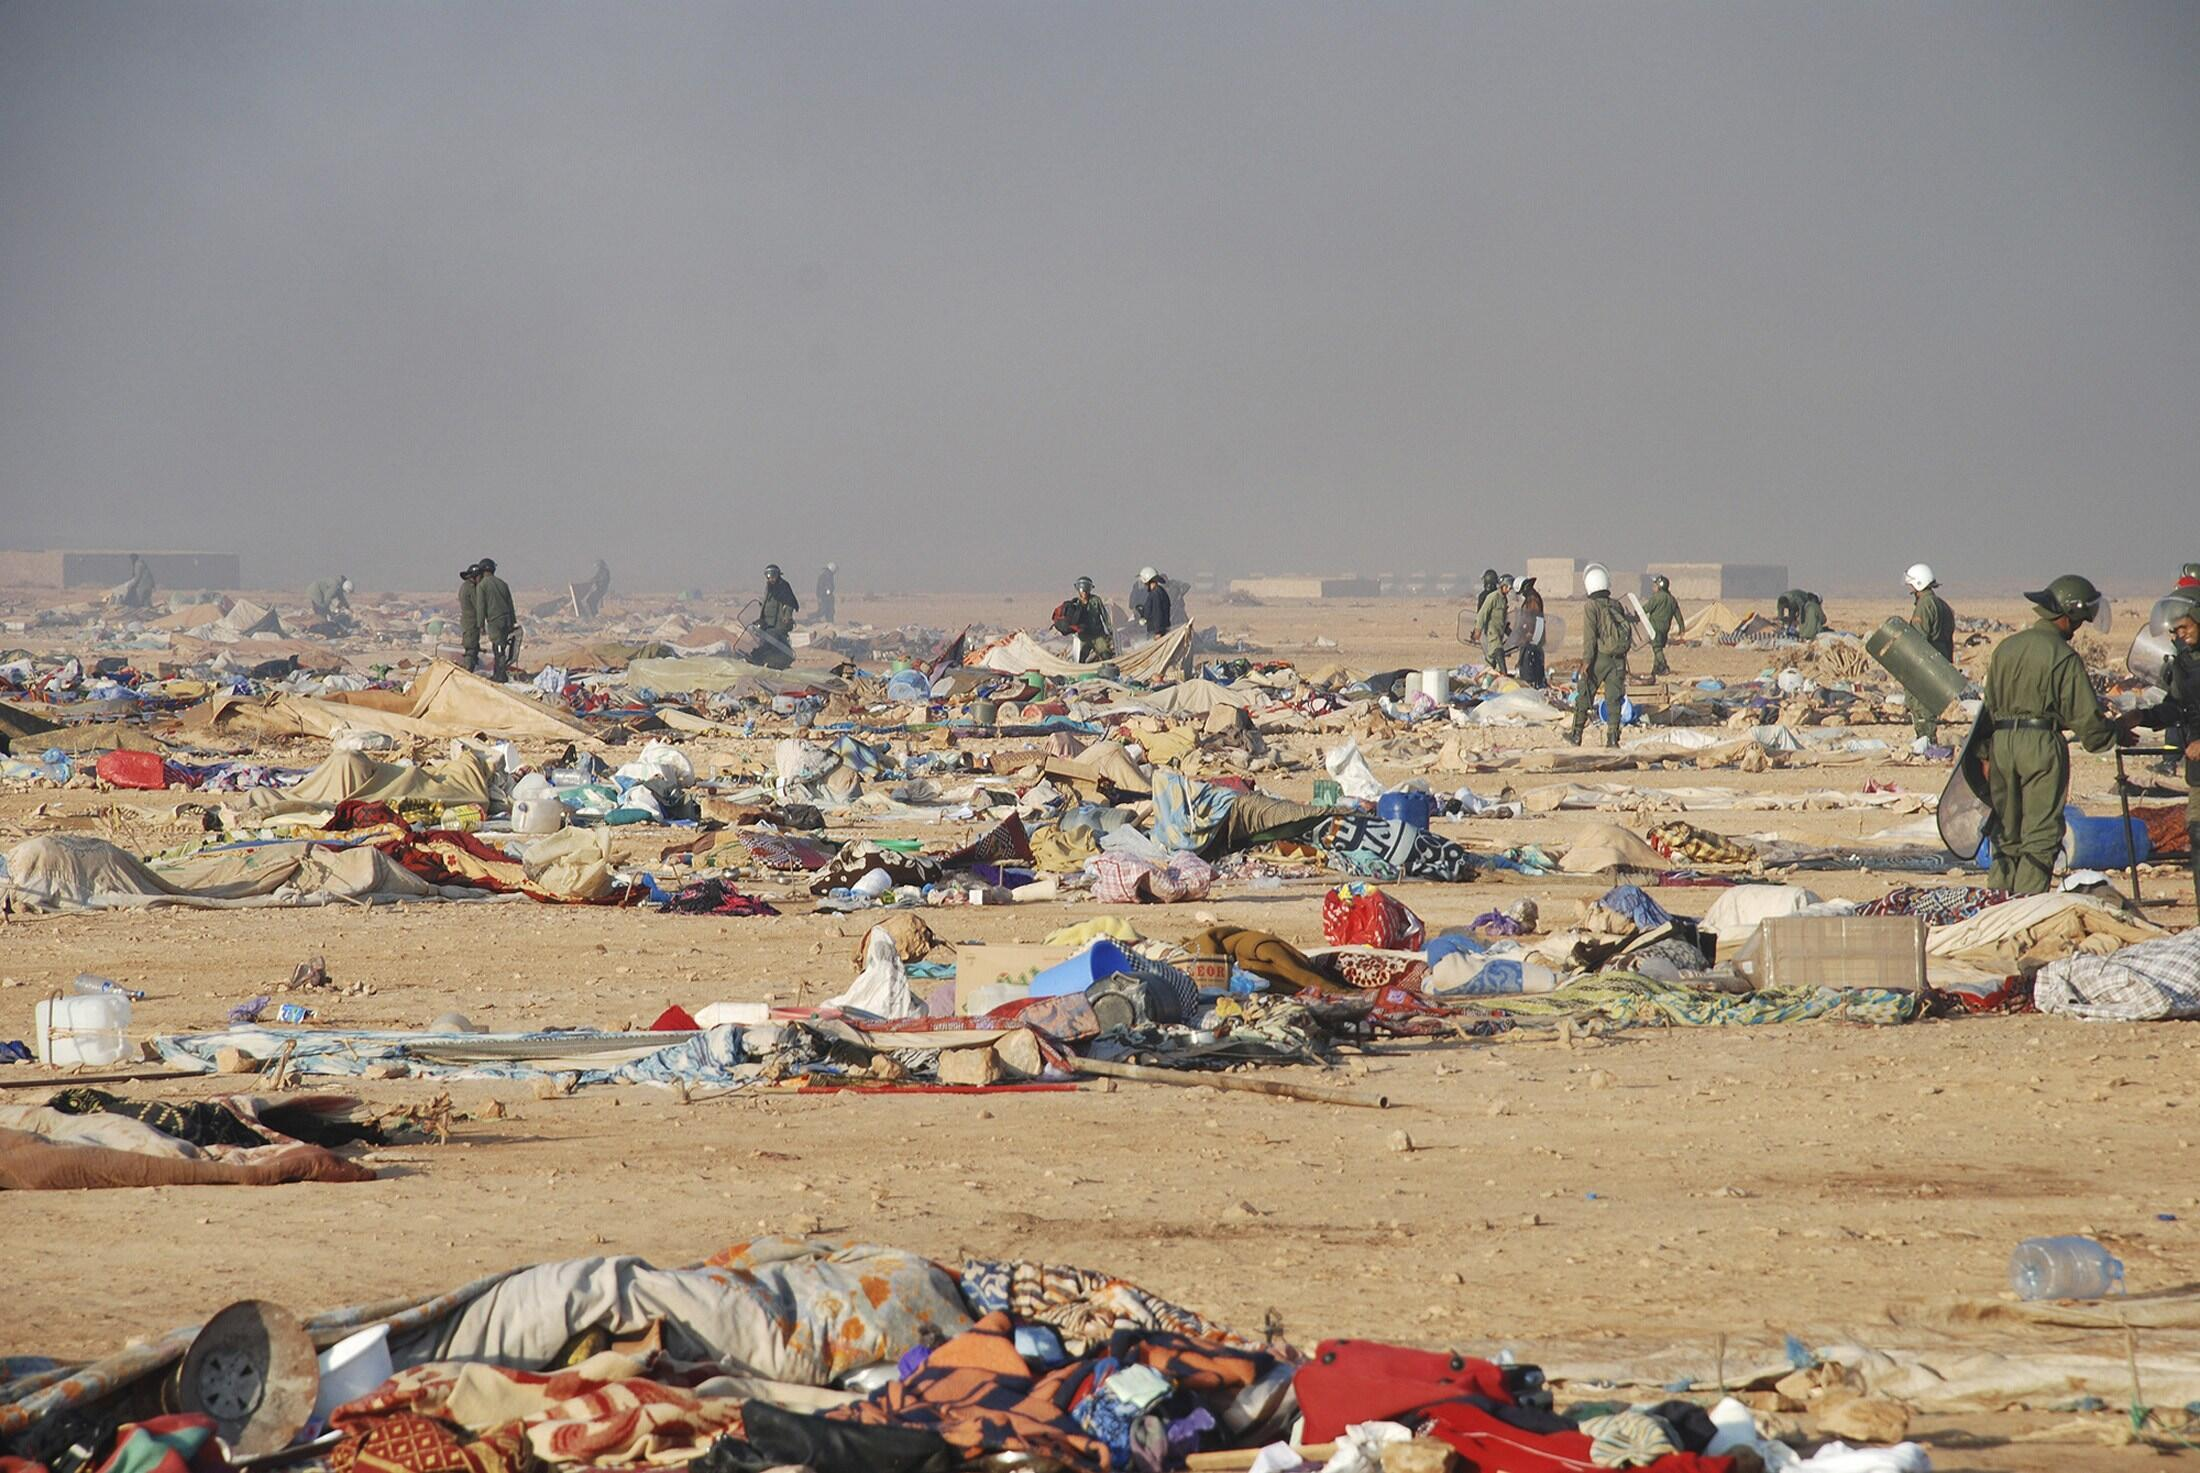 Moroccan security forces break up the tent camp on the outskirts of Western Sahara's capital, Laayoune, on 8 November, 2010